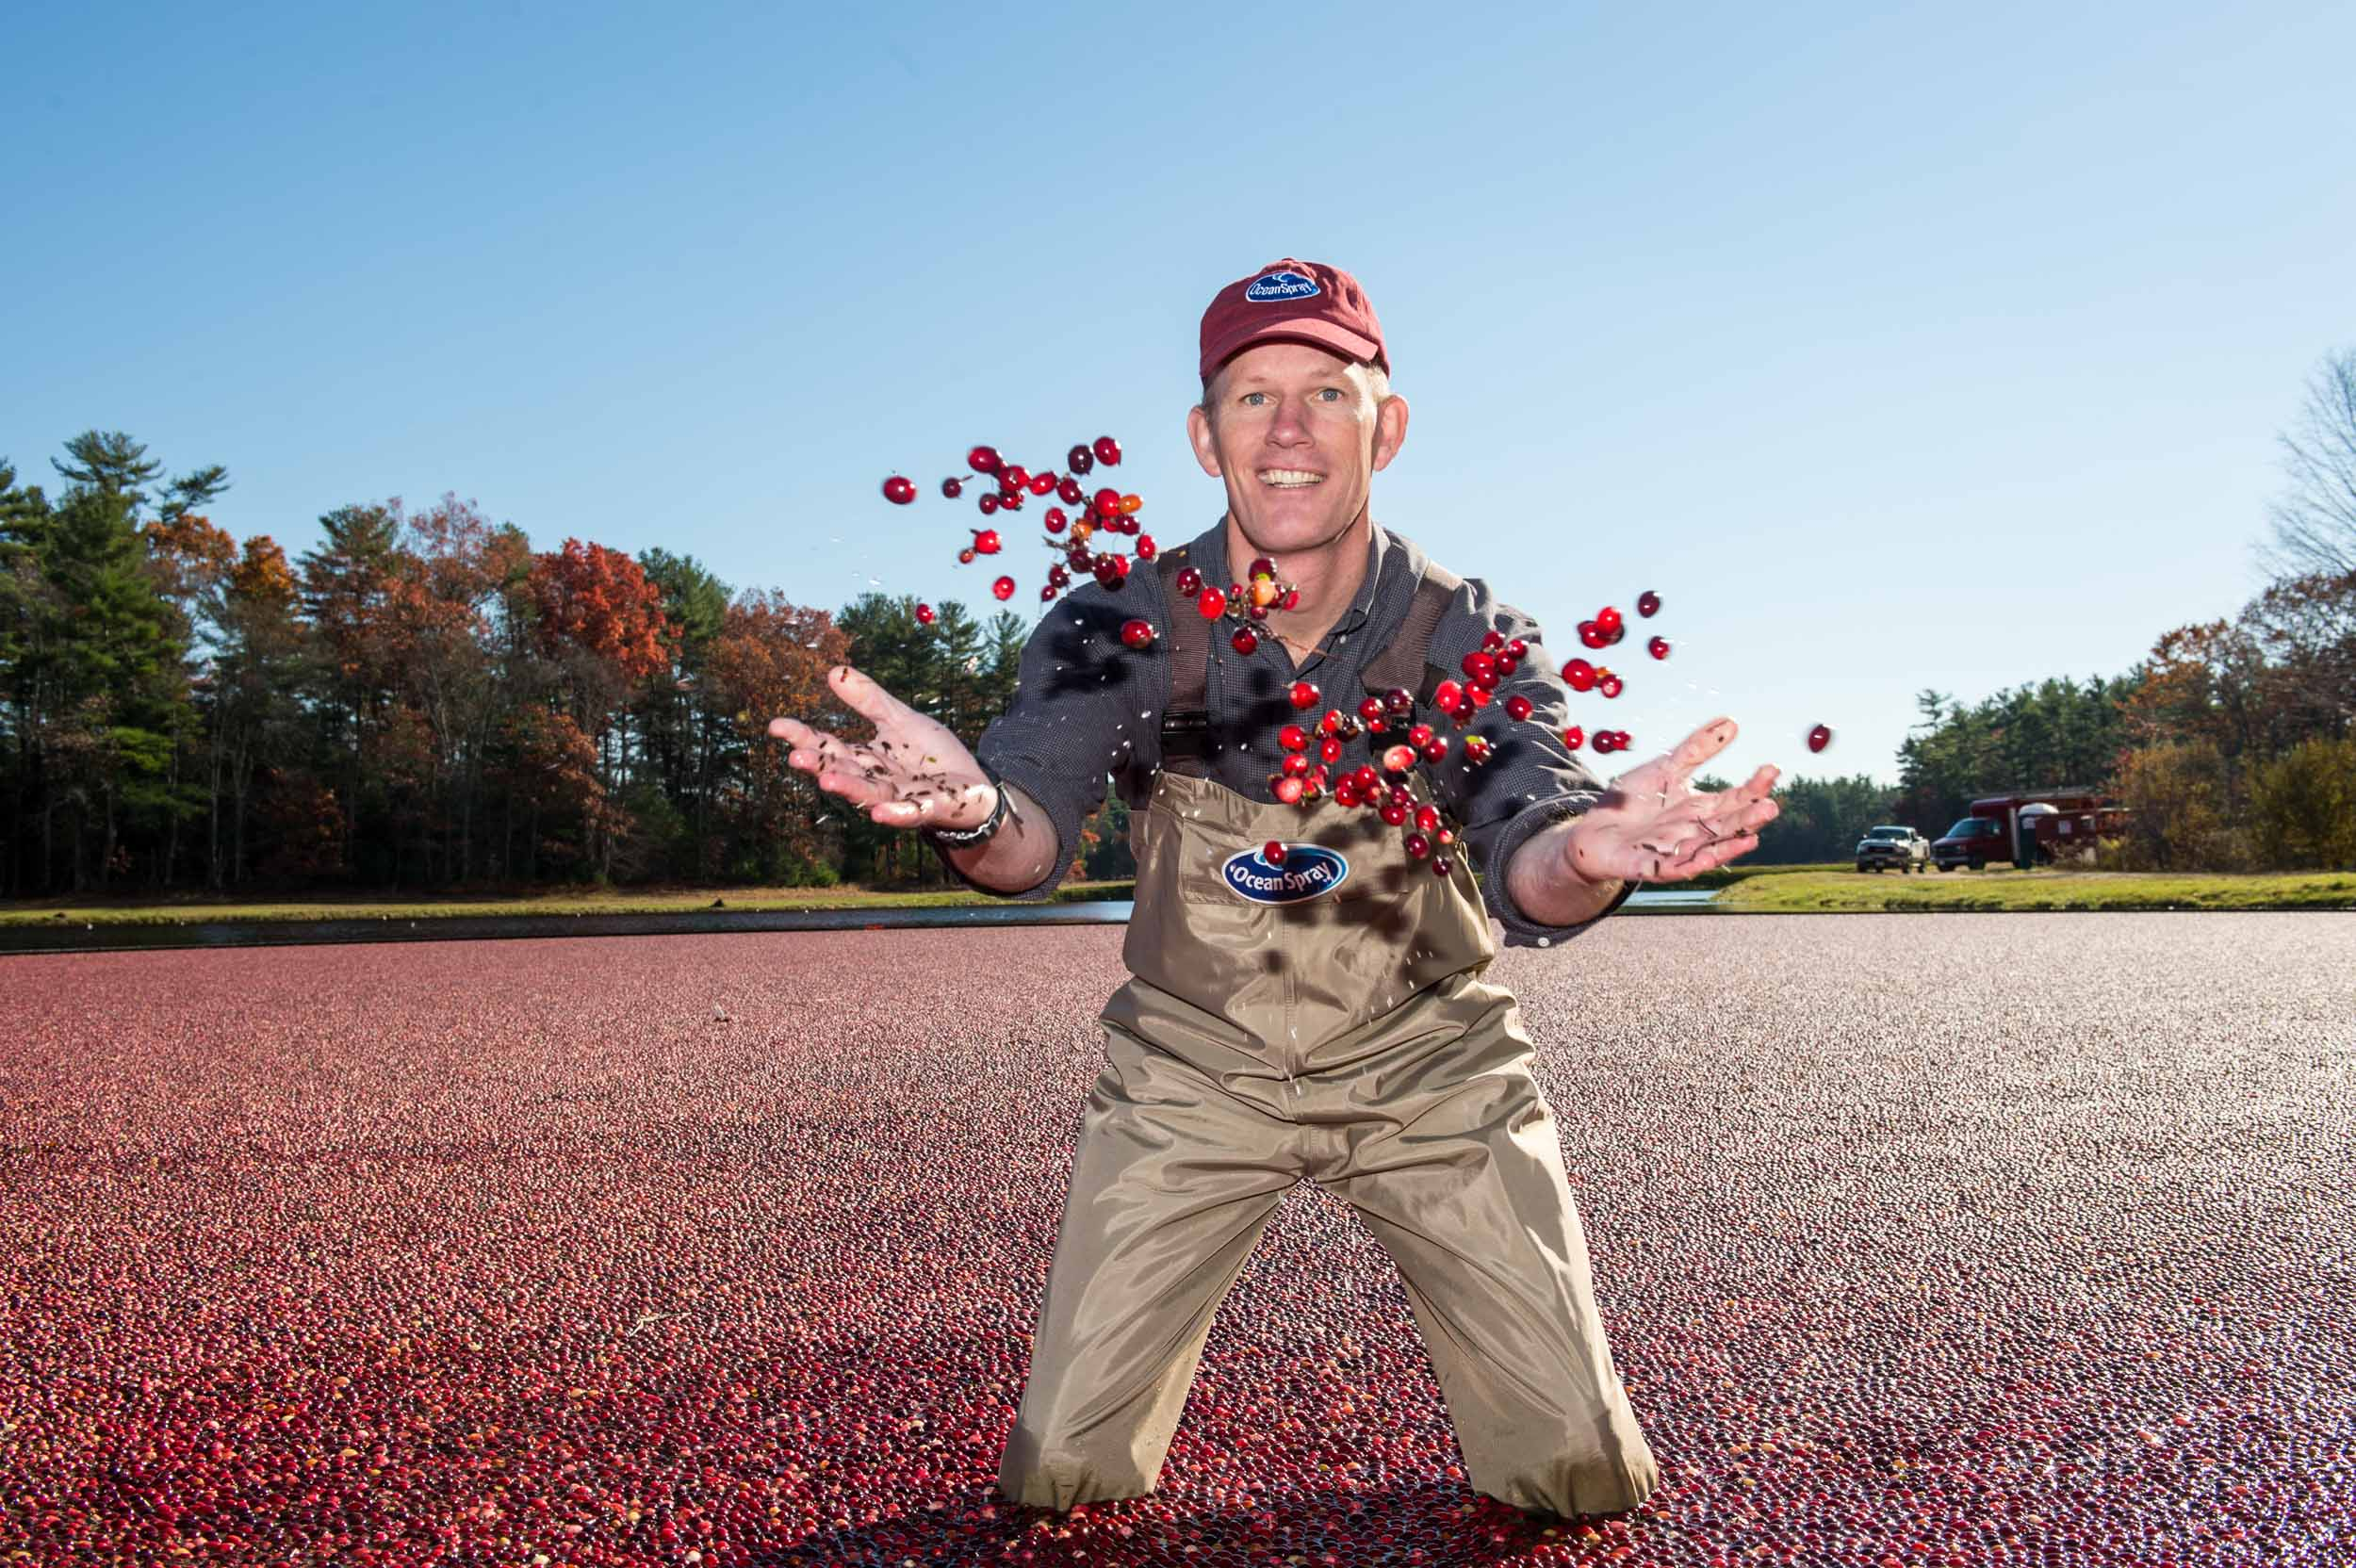 Maura Wayman Photography, Photography, Corporate Photography,Massachusetts, Boston, Metro West, events, Corporate events, Photographer, Functions, Parties, Fundraisers, Ocean Spray, Bogs, cranberries, cranberry, waders, walking in a bog, Corproate Team building, tossing berries, fruit, red,